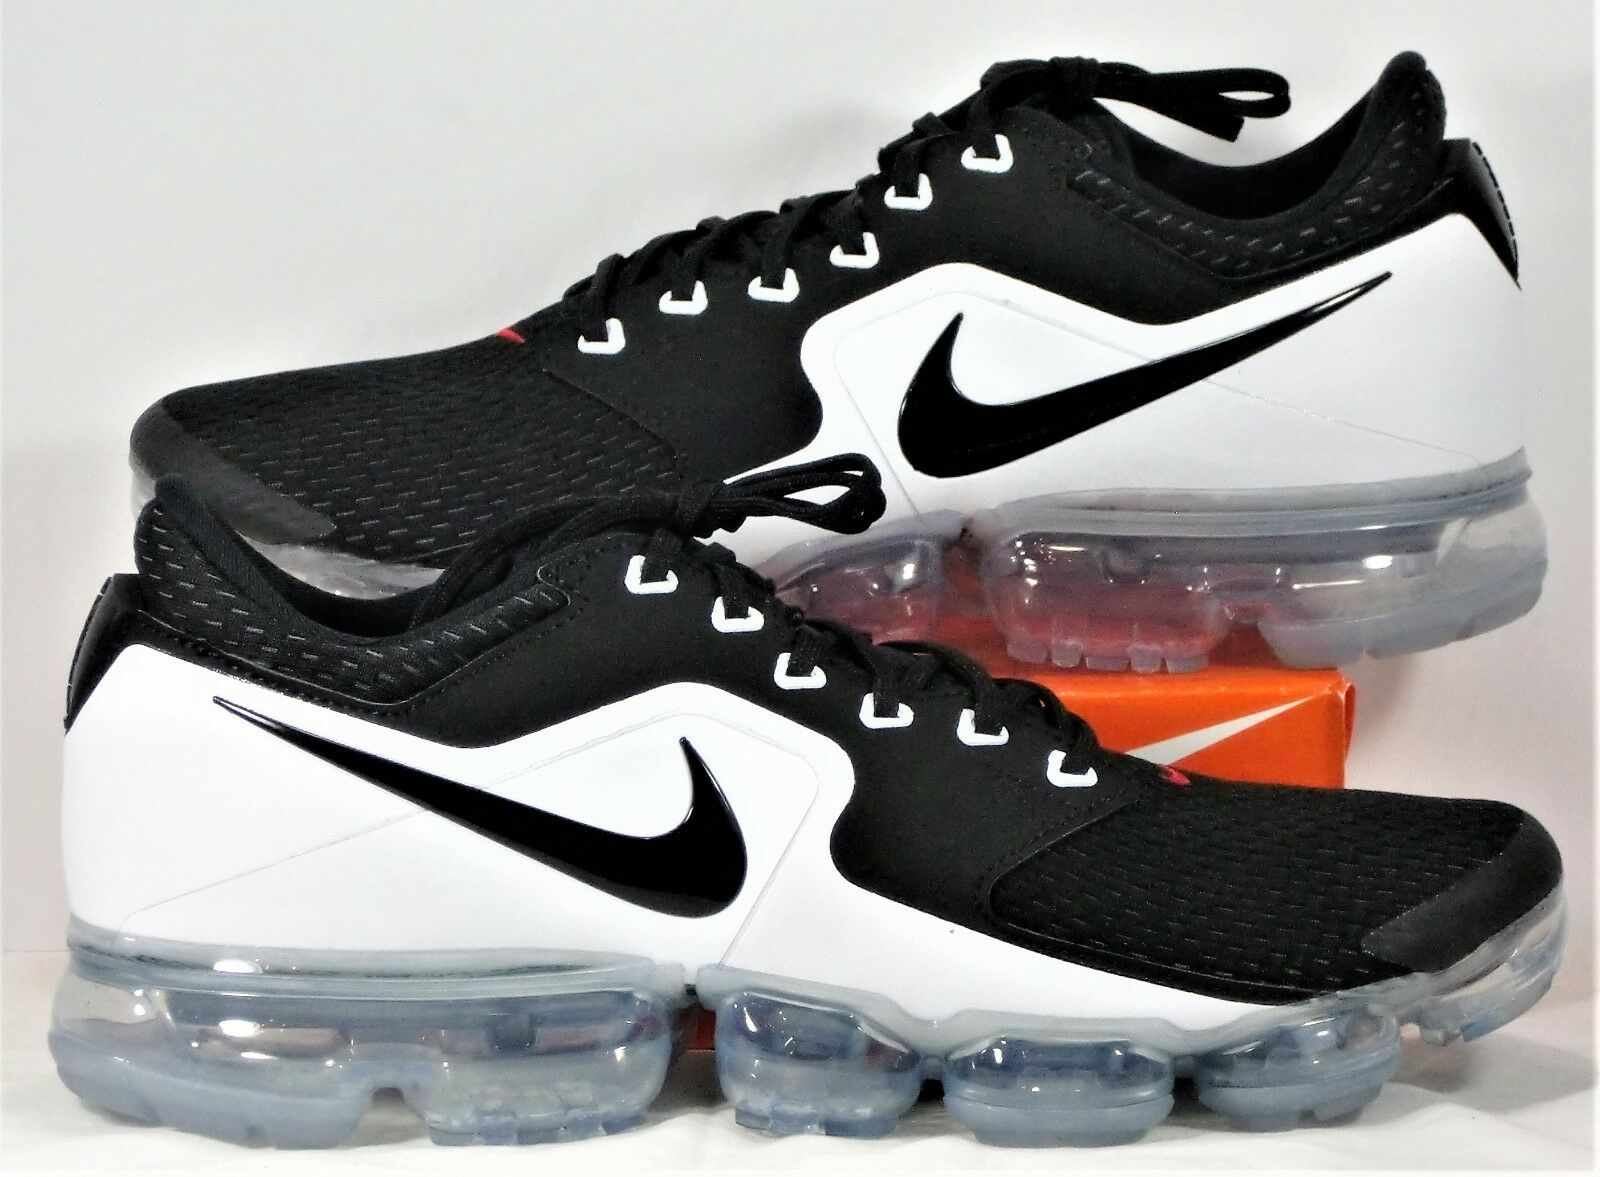 timeless design 7a0de a278c Nike Air VaporMax VaporMax VaporMax Vapor Max CS Black   White Running Shoes  Sz 10 NEW